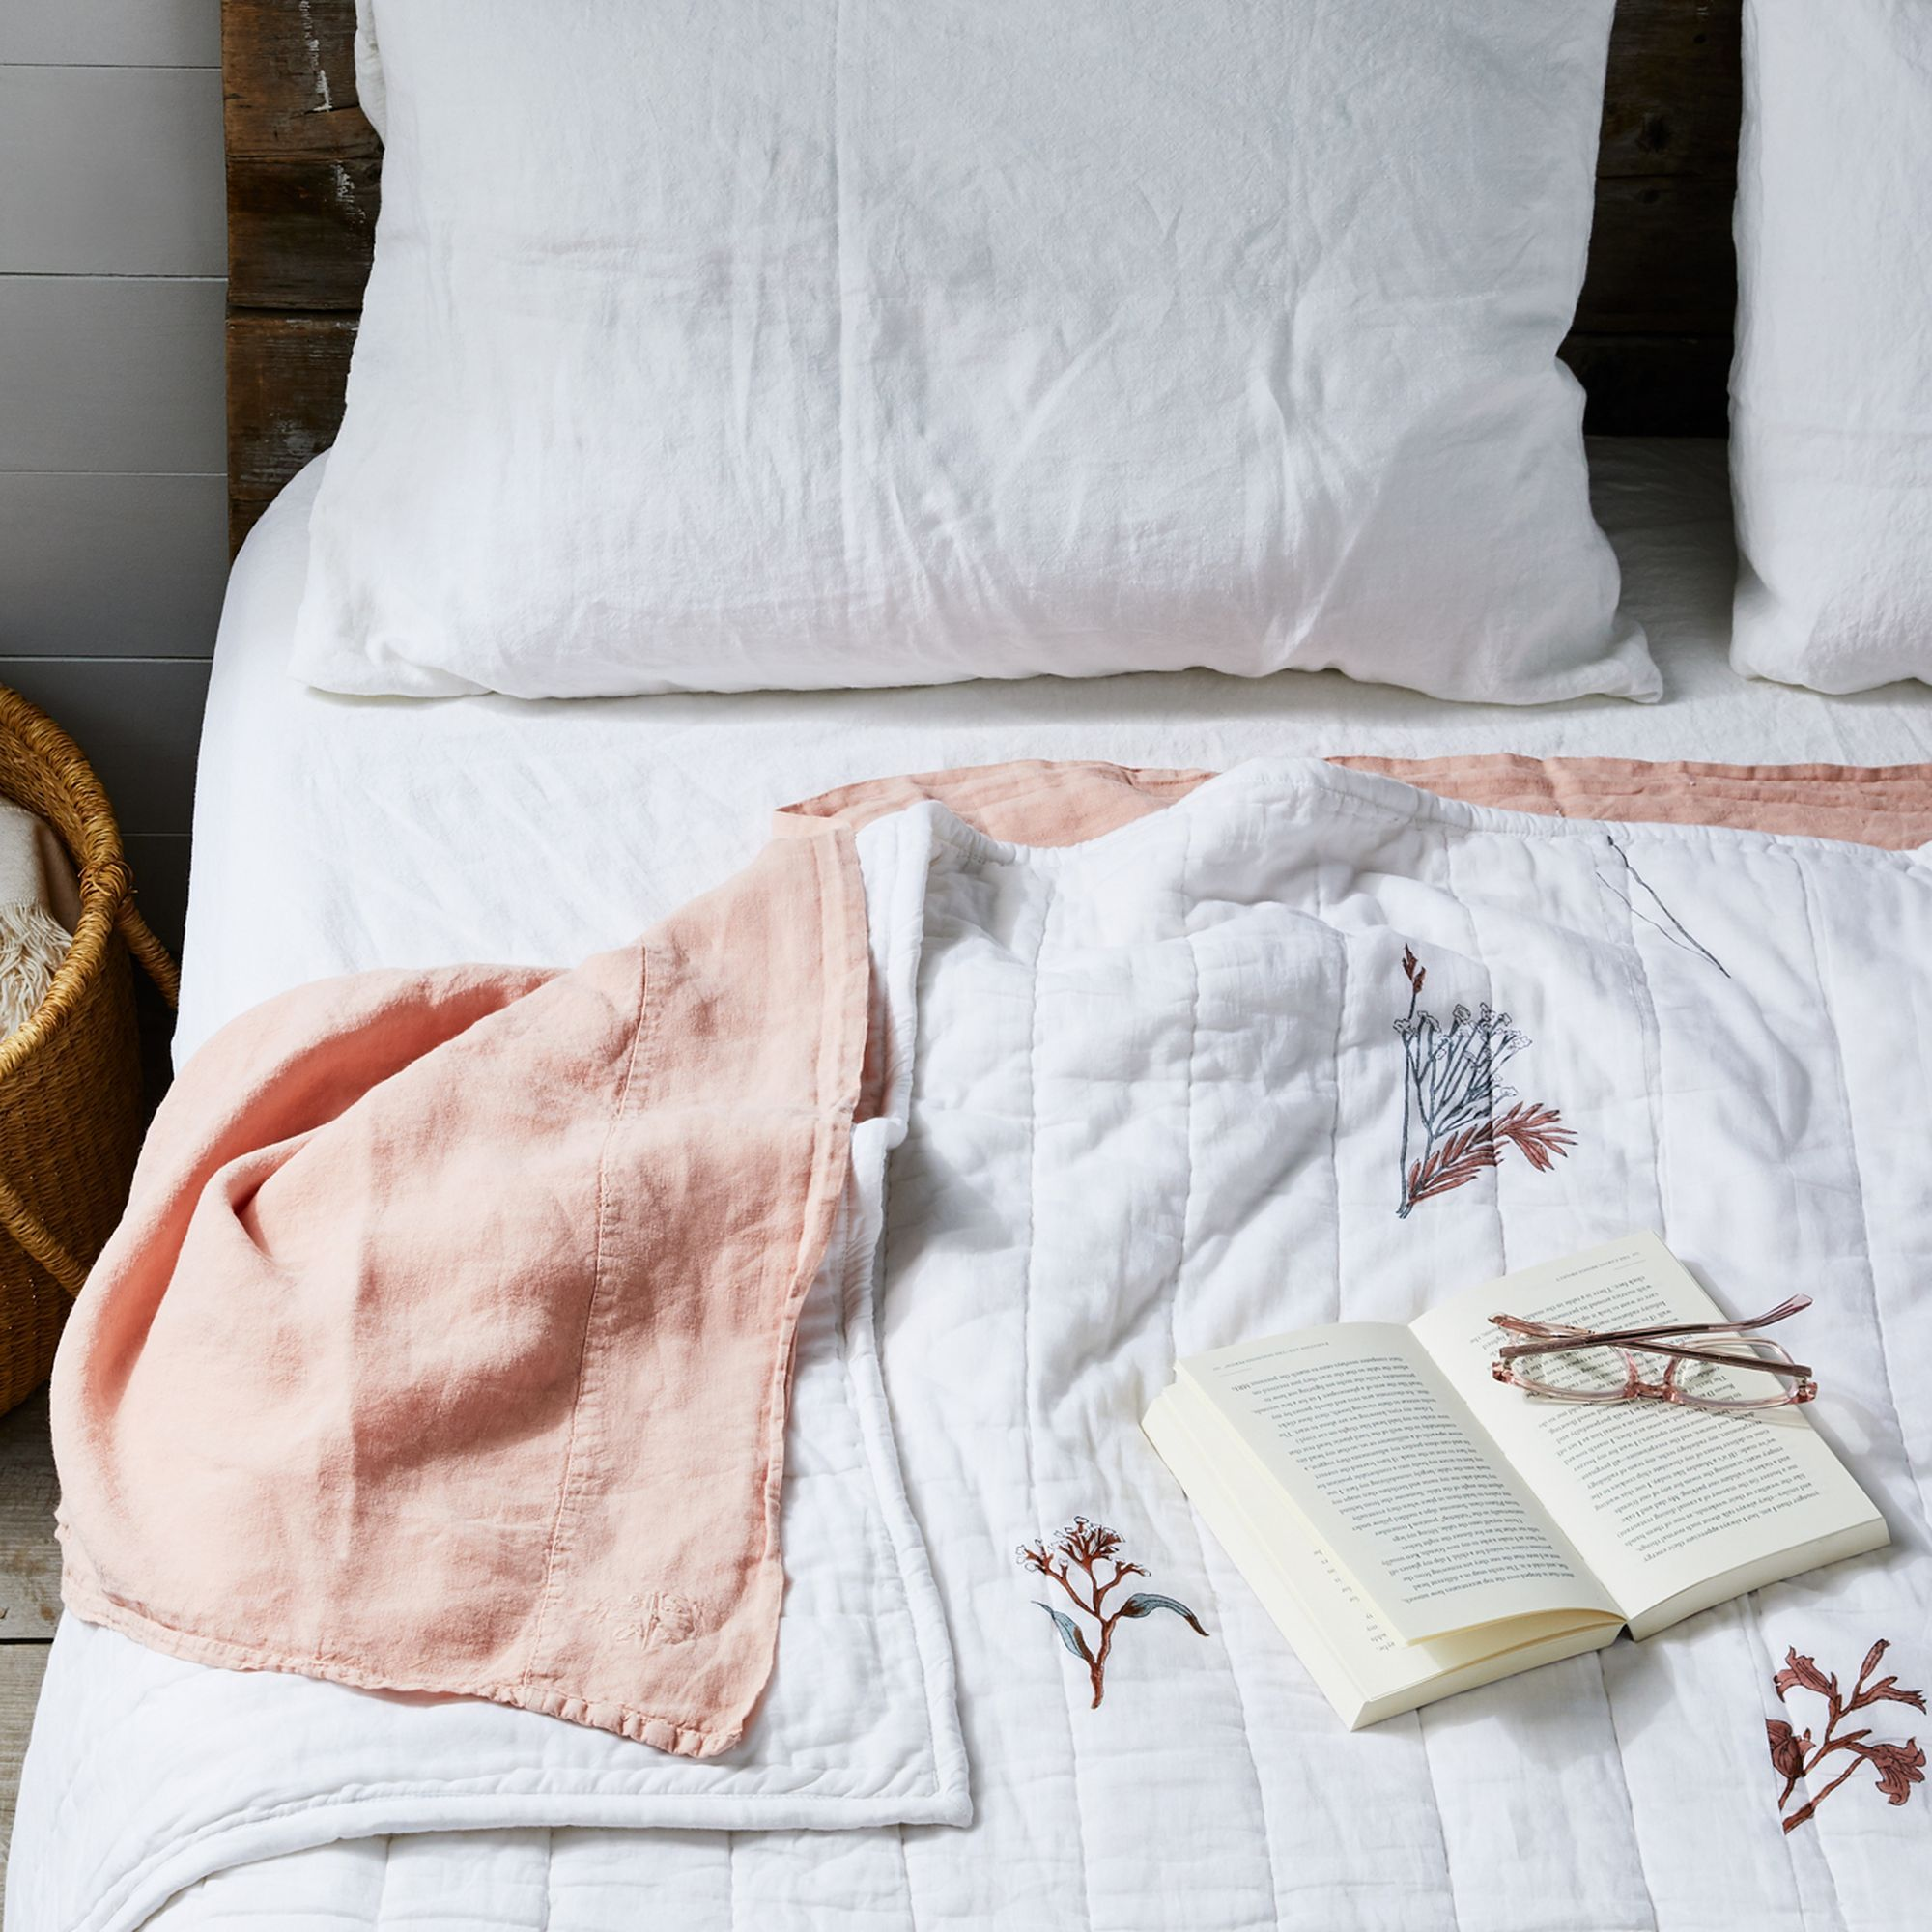 5 Insider Tricks to Make Your Bedroom As SleepFriendly As